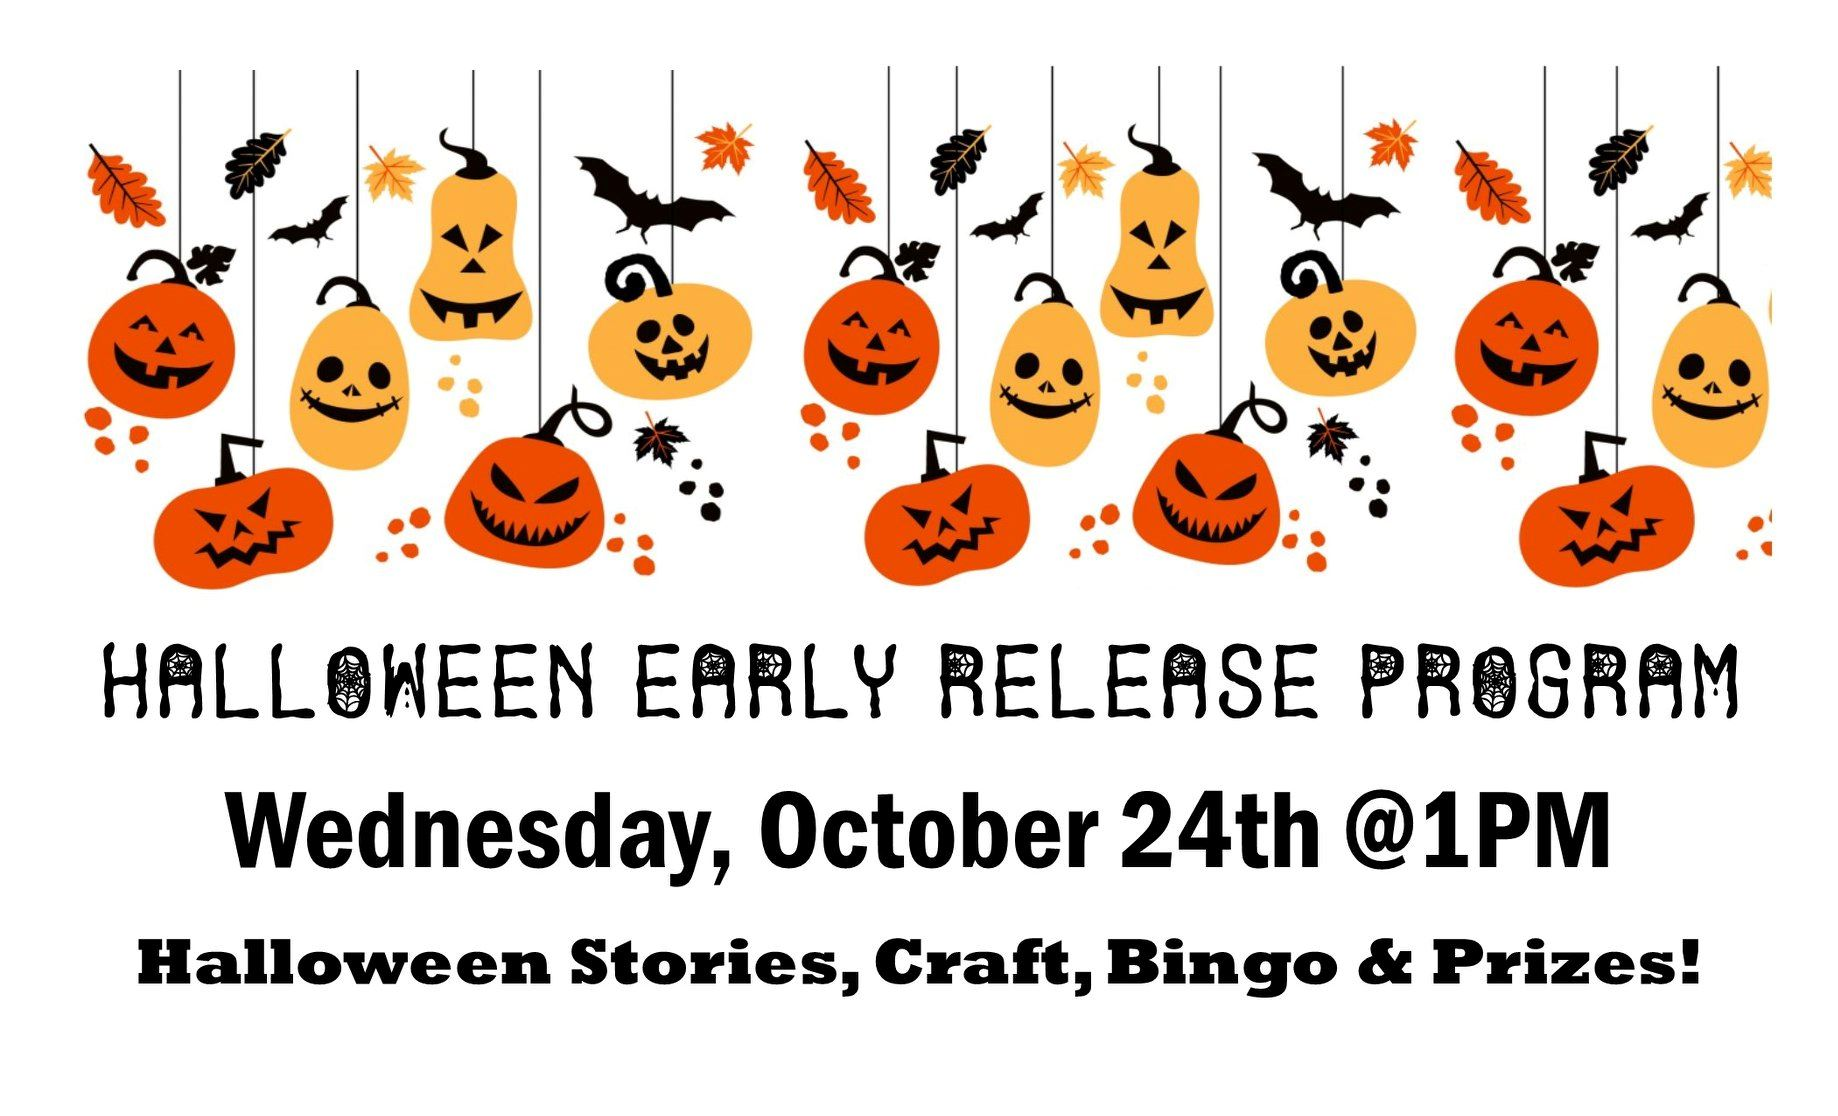 HALLOWEEN PROGRAMMING AT LIBRARY